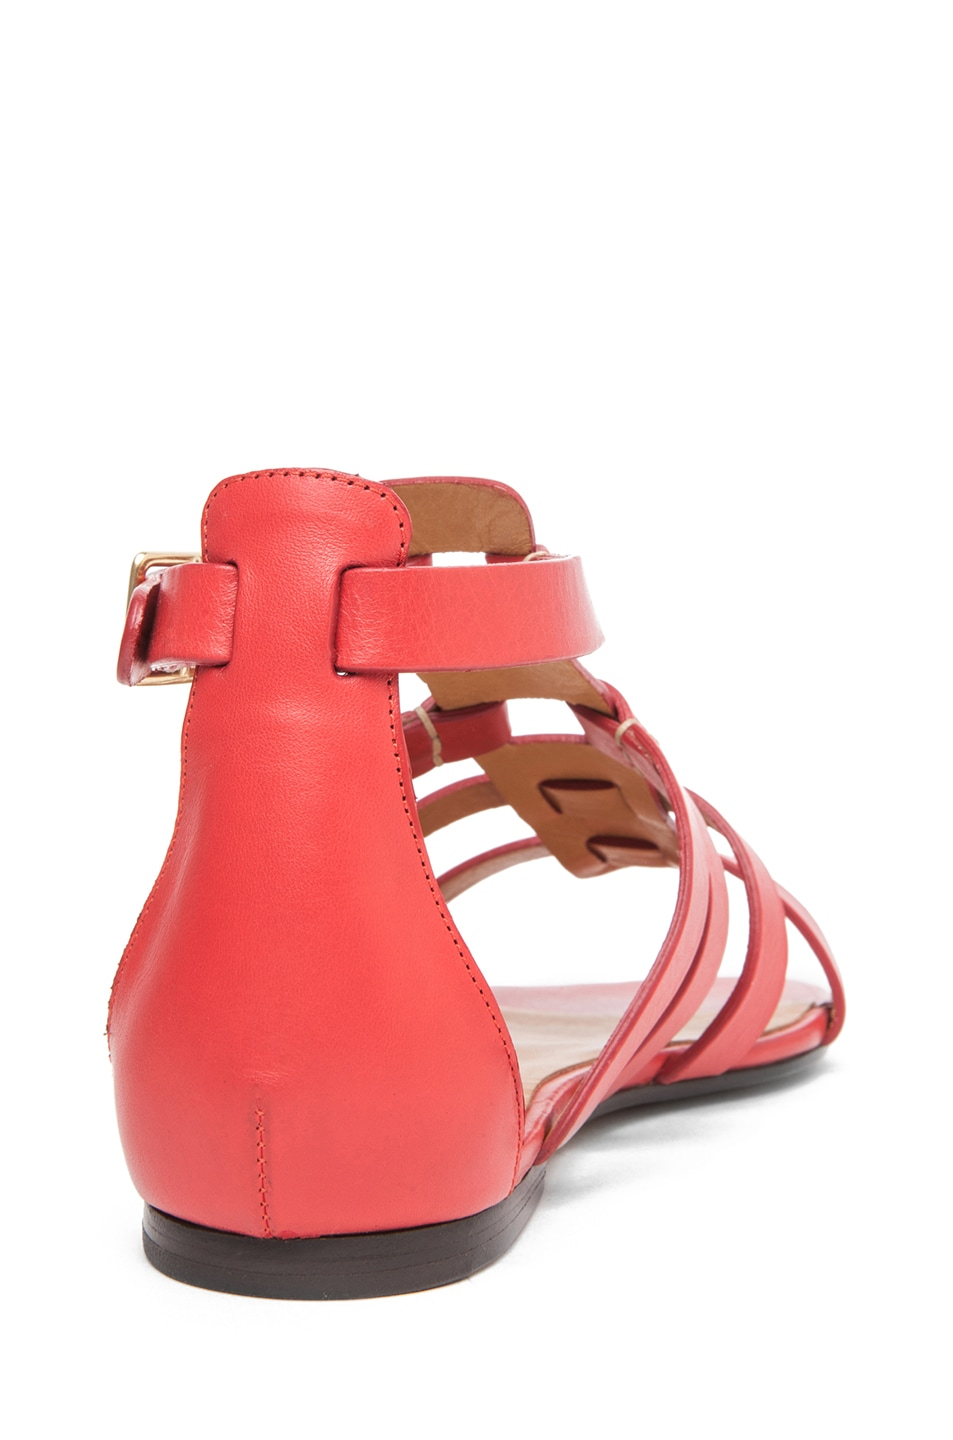 Image 3 of Chloe Leather Gladiator Sandals in Red